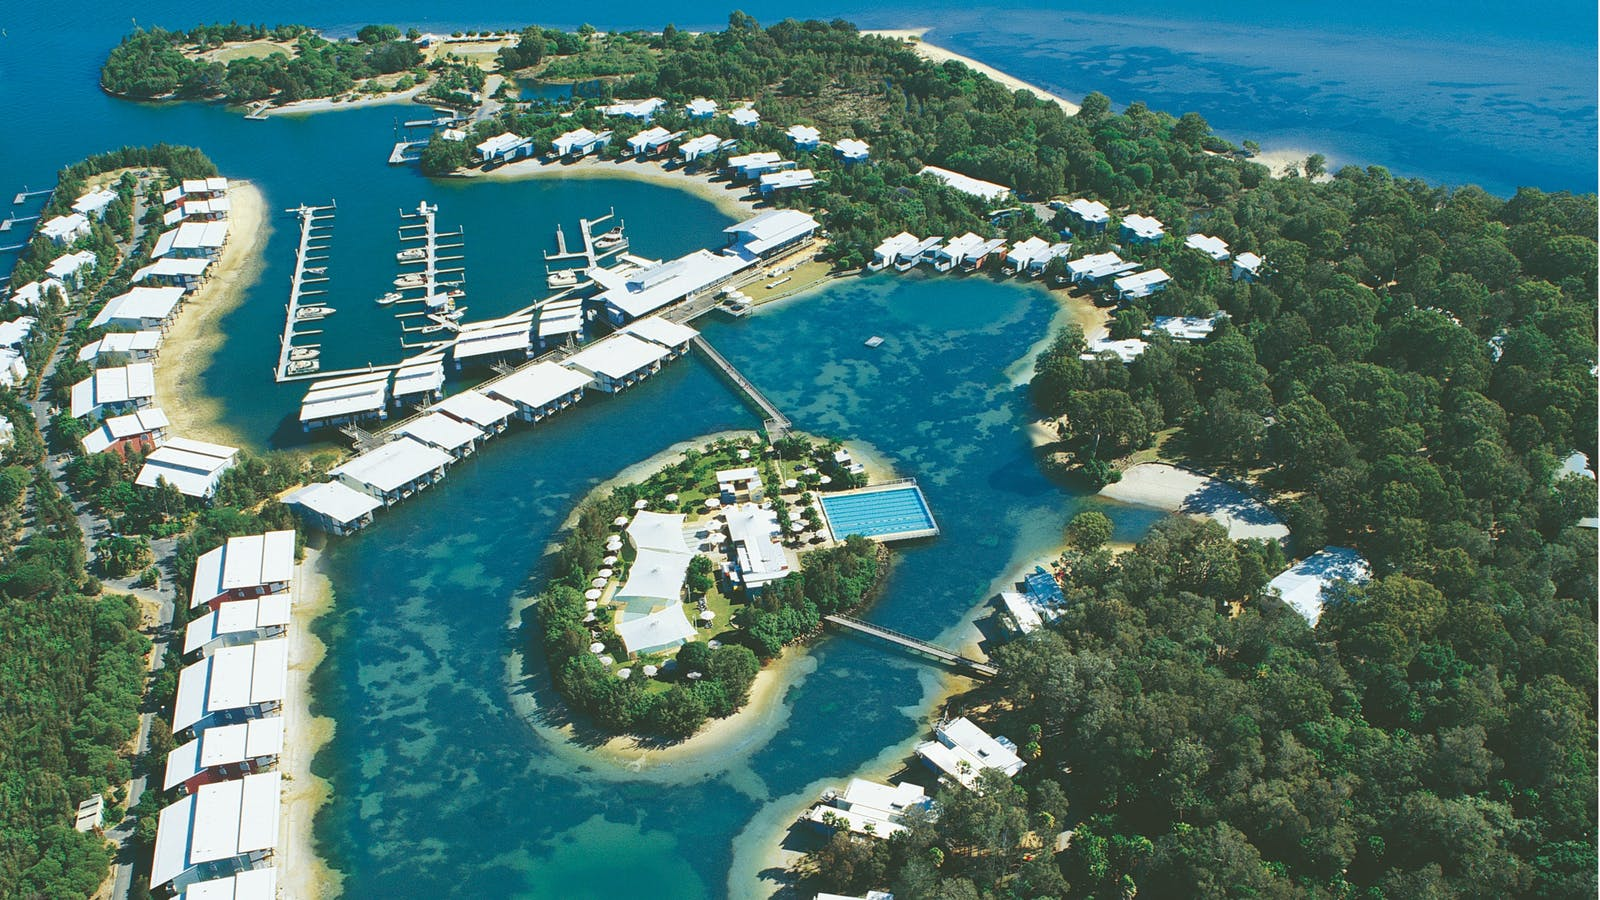 Aerial photo of Couran Cove Resort on South Stradbroke Island